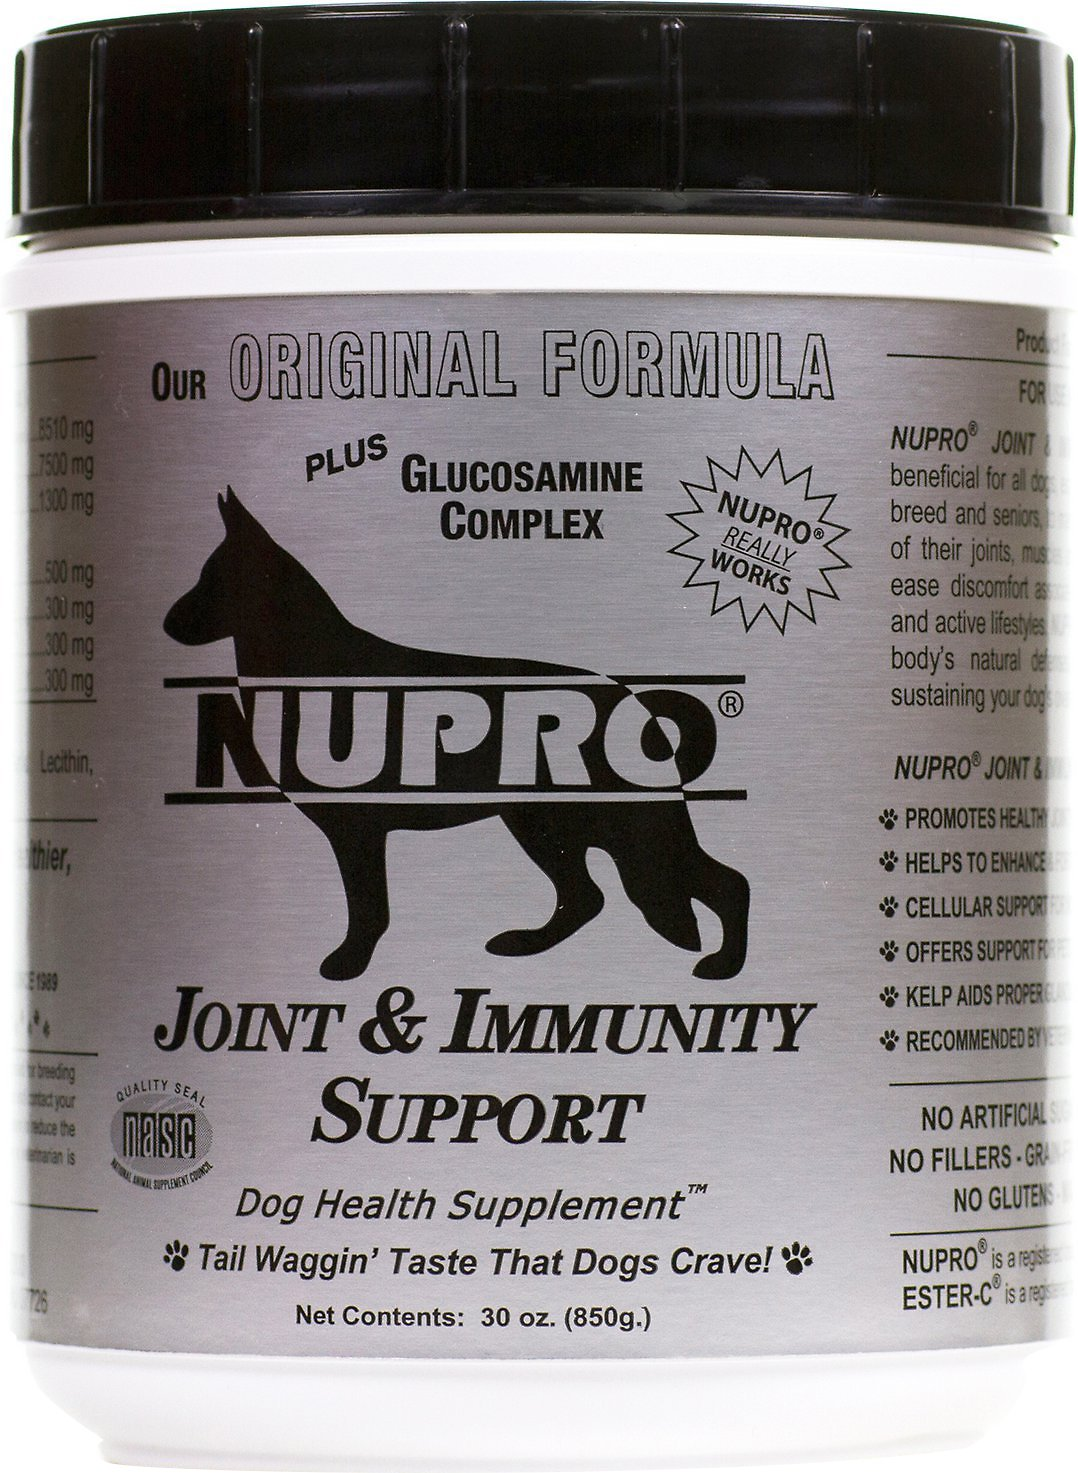 Nupro All Natural Joint & Immunity Support Dog Suppliment Image